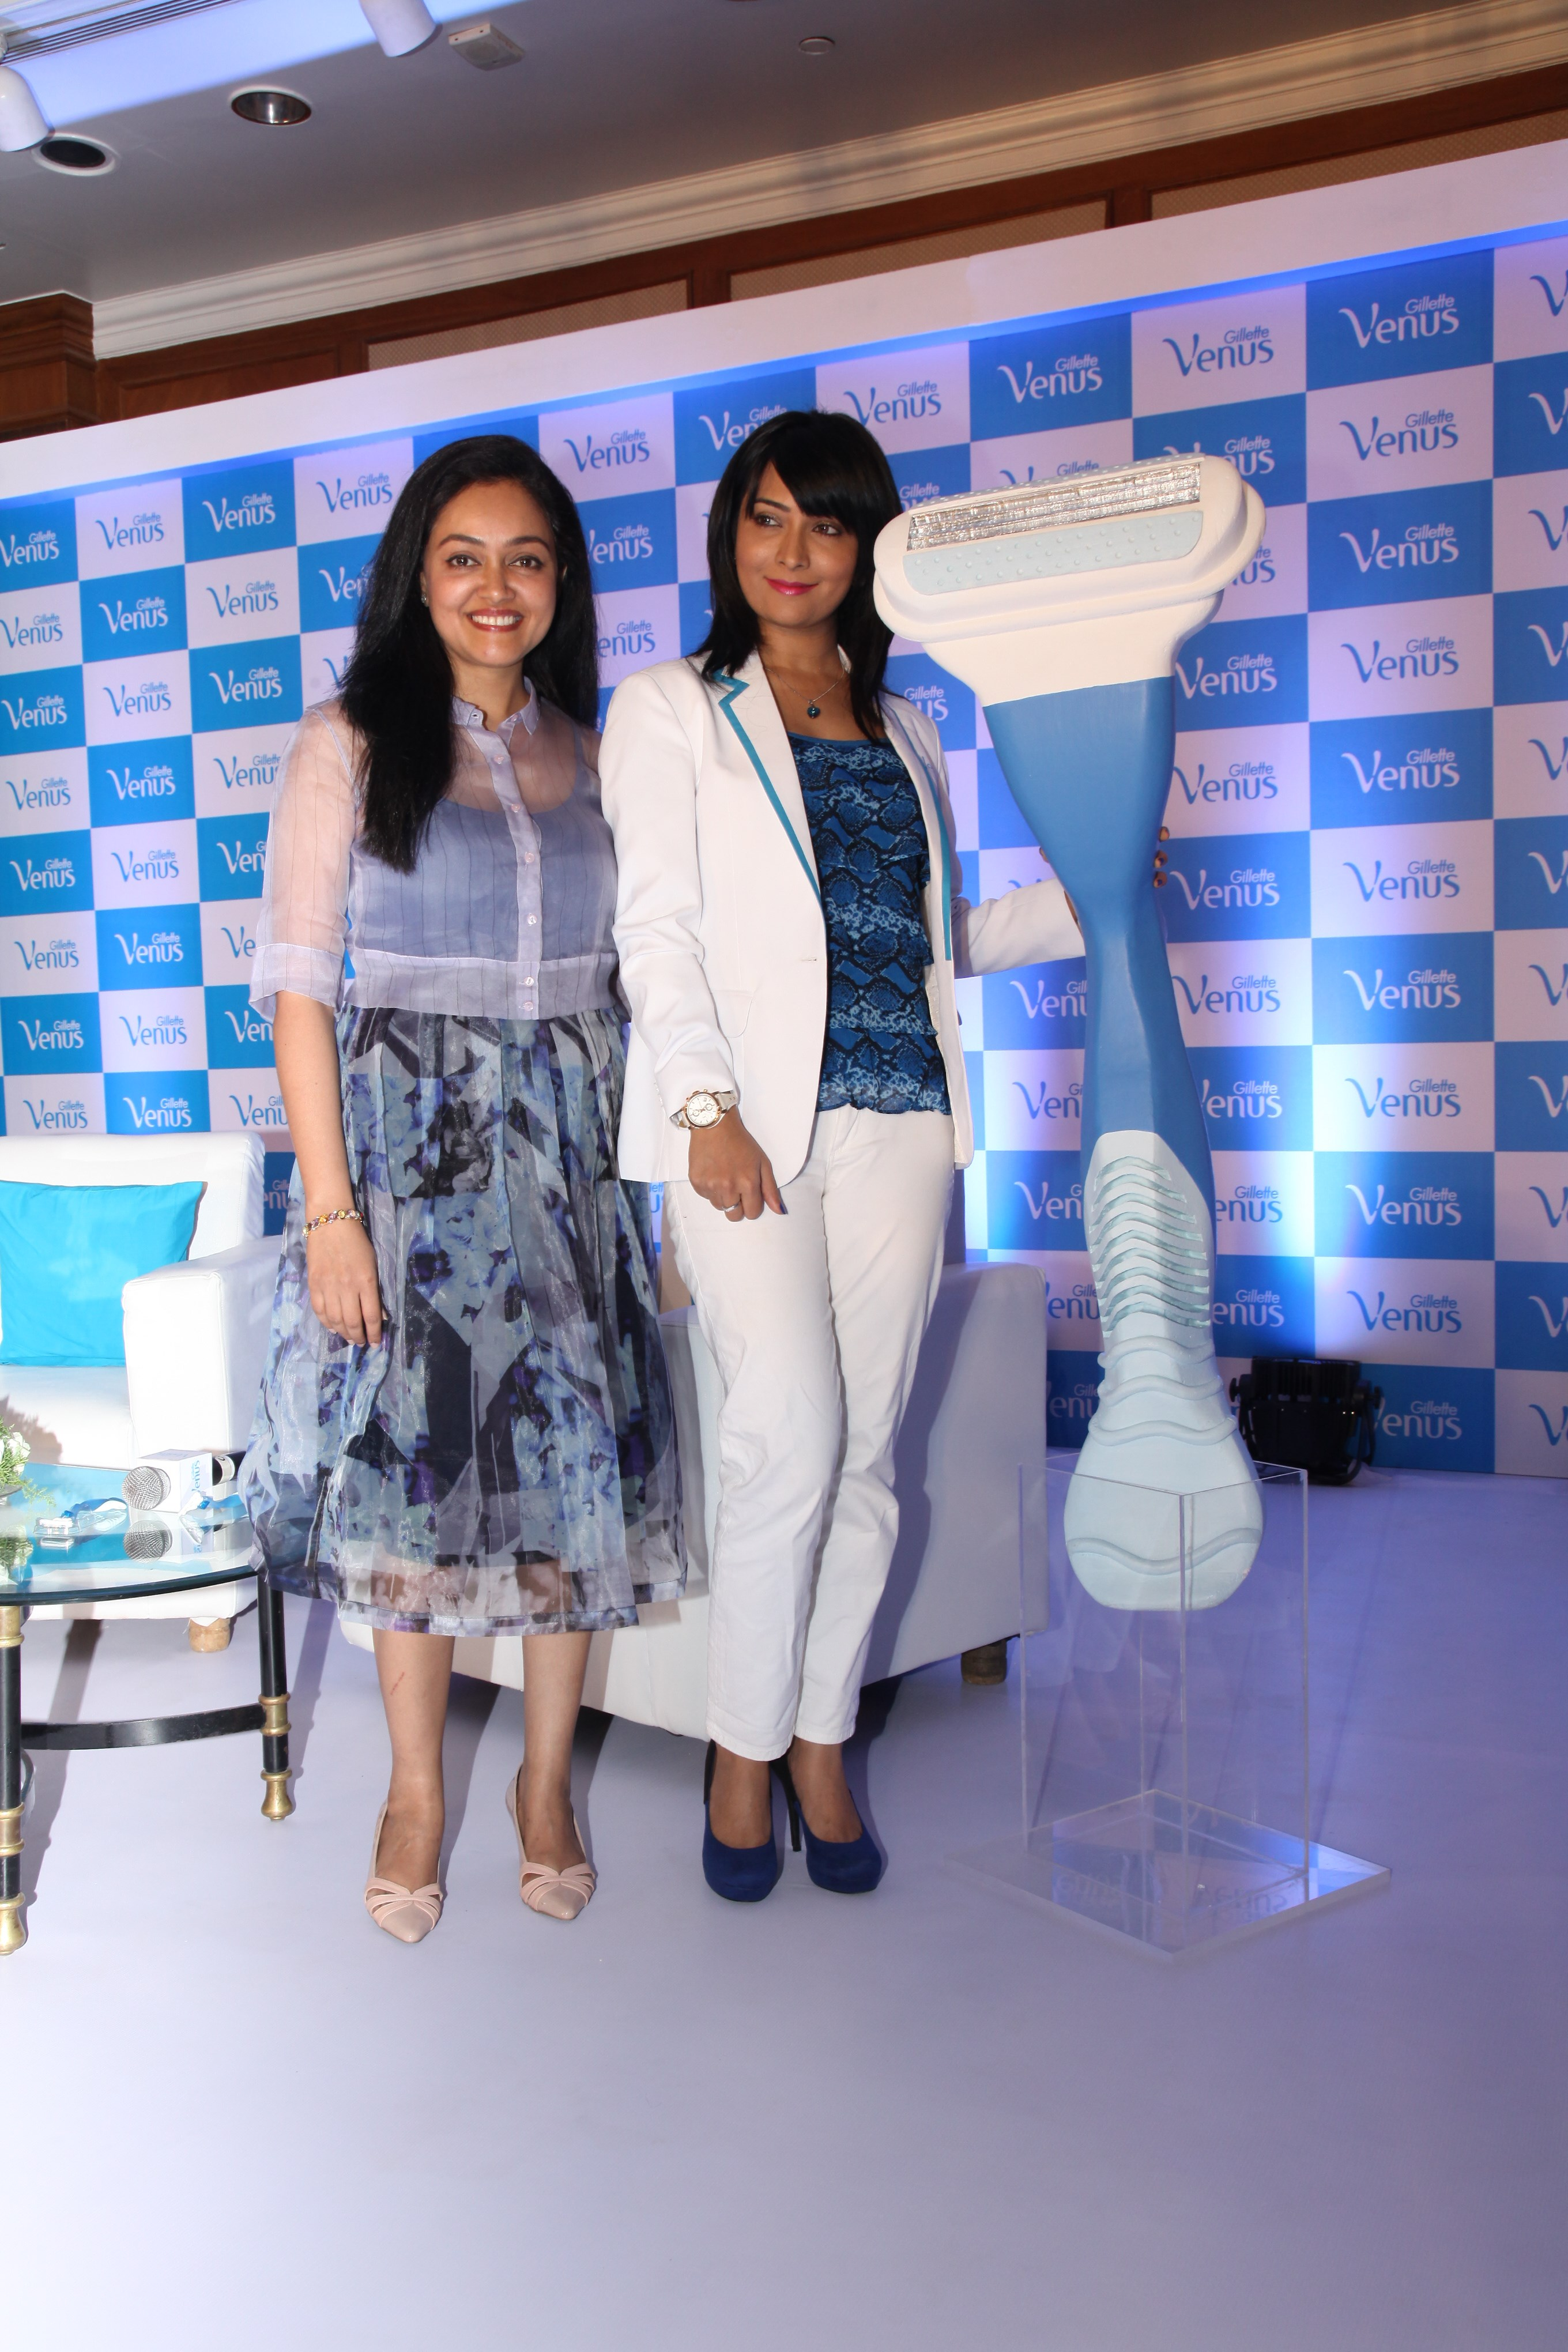 doctor rashmi shetty and actress radhika pandit at gillette venus subscribe to smooth event